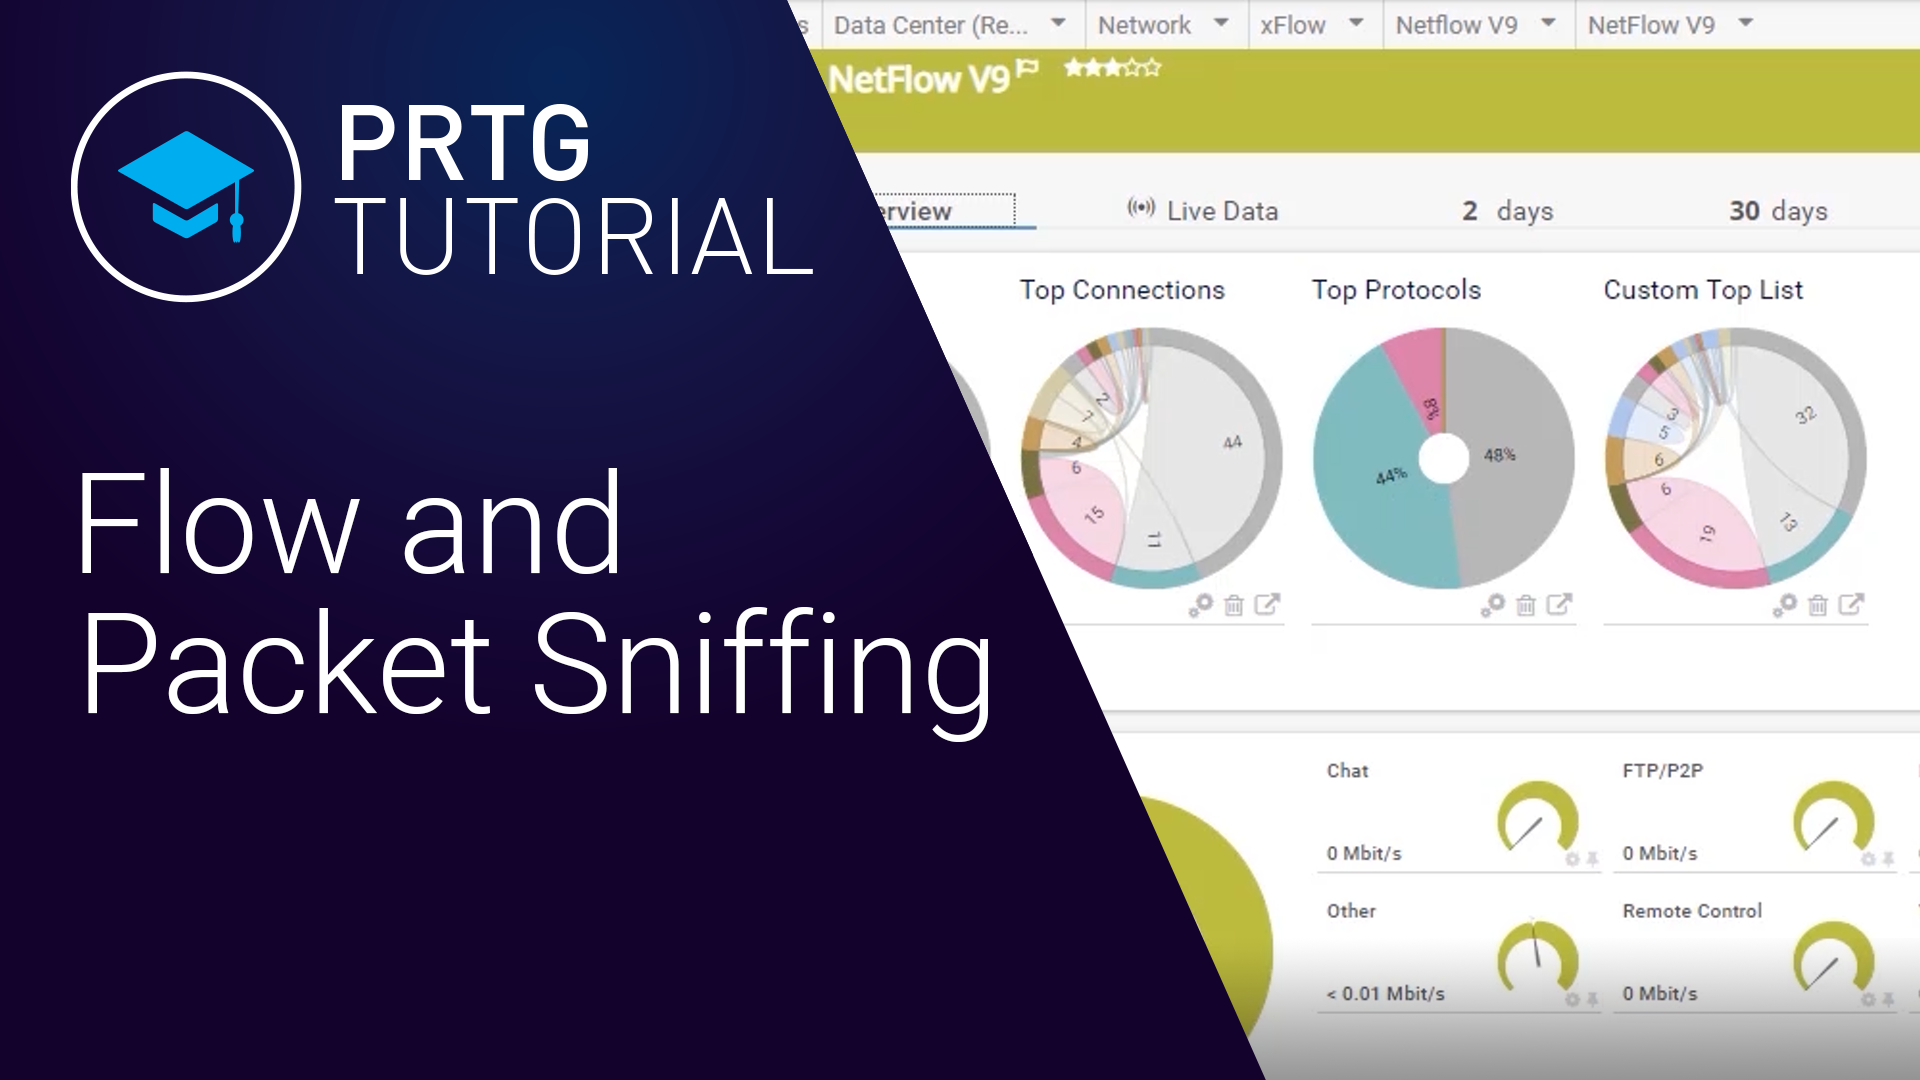 Video: Bandwidth monitoring with flows and packet sniffing (Videos, Bandwidth, Traffic & Flow)